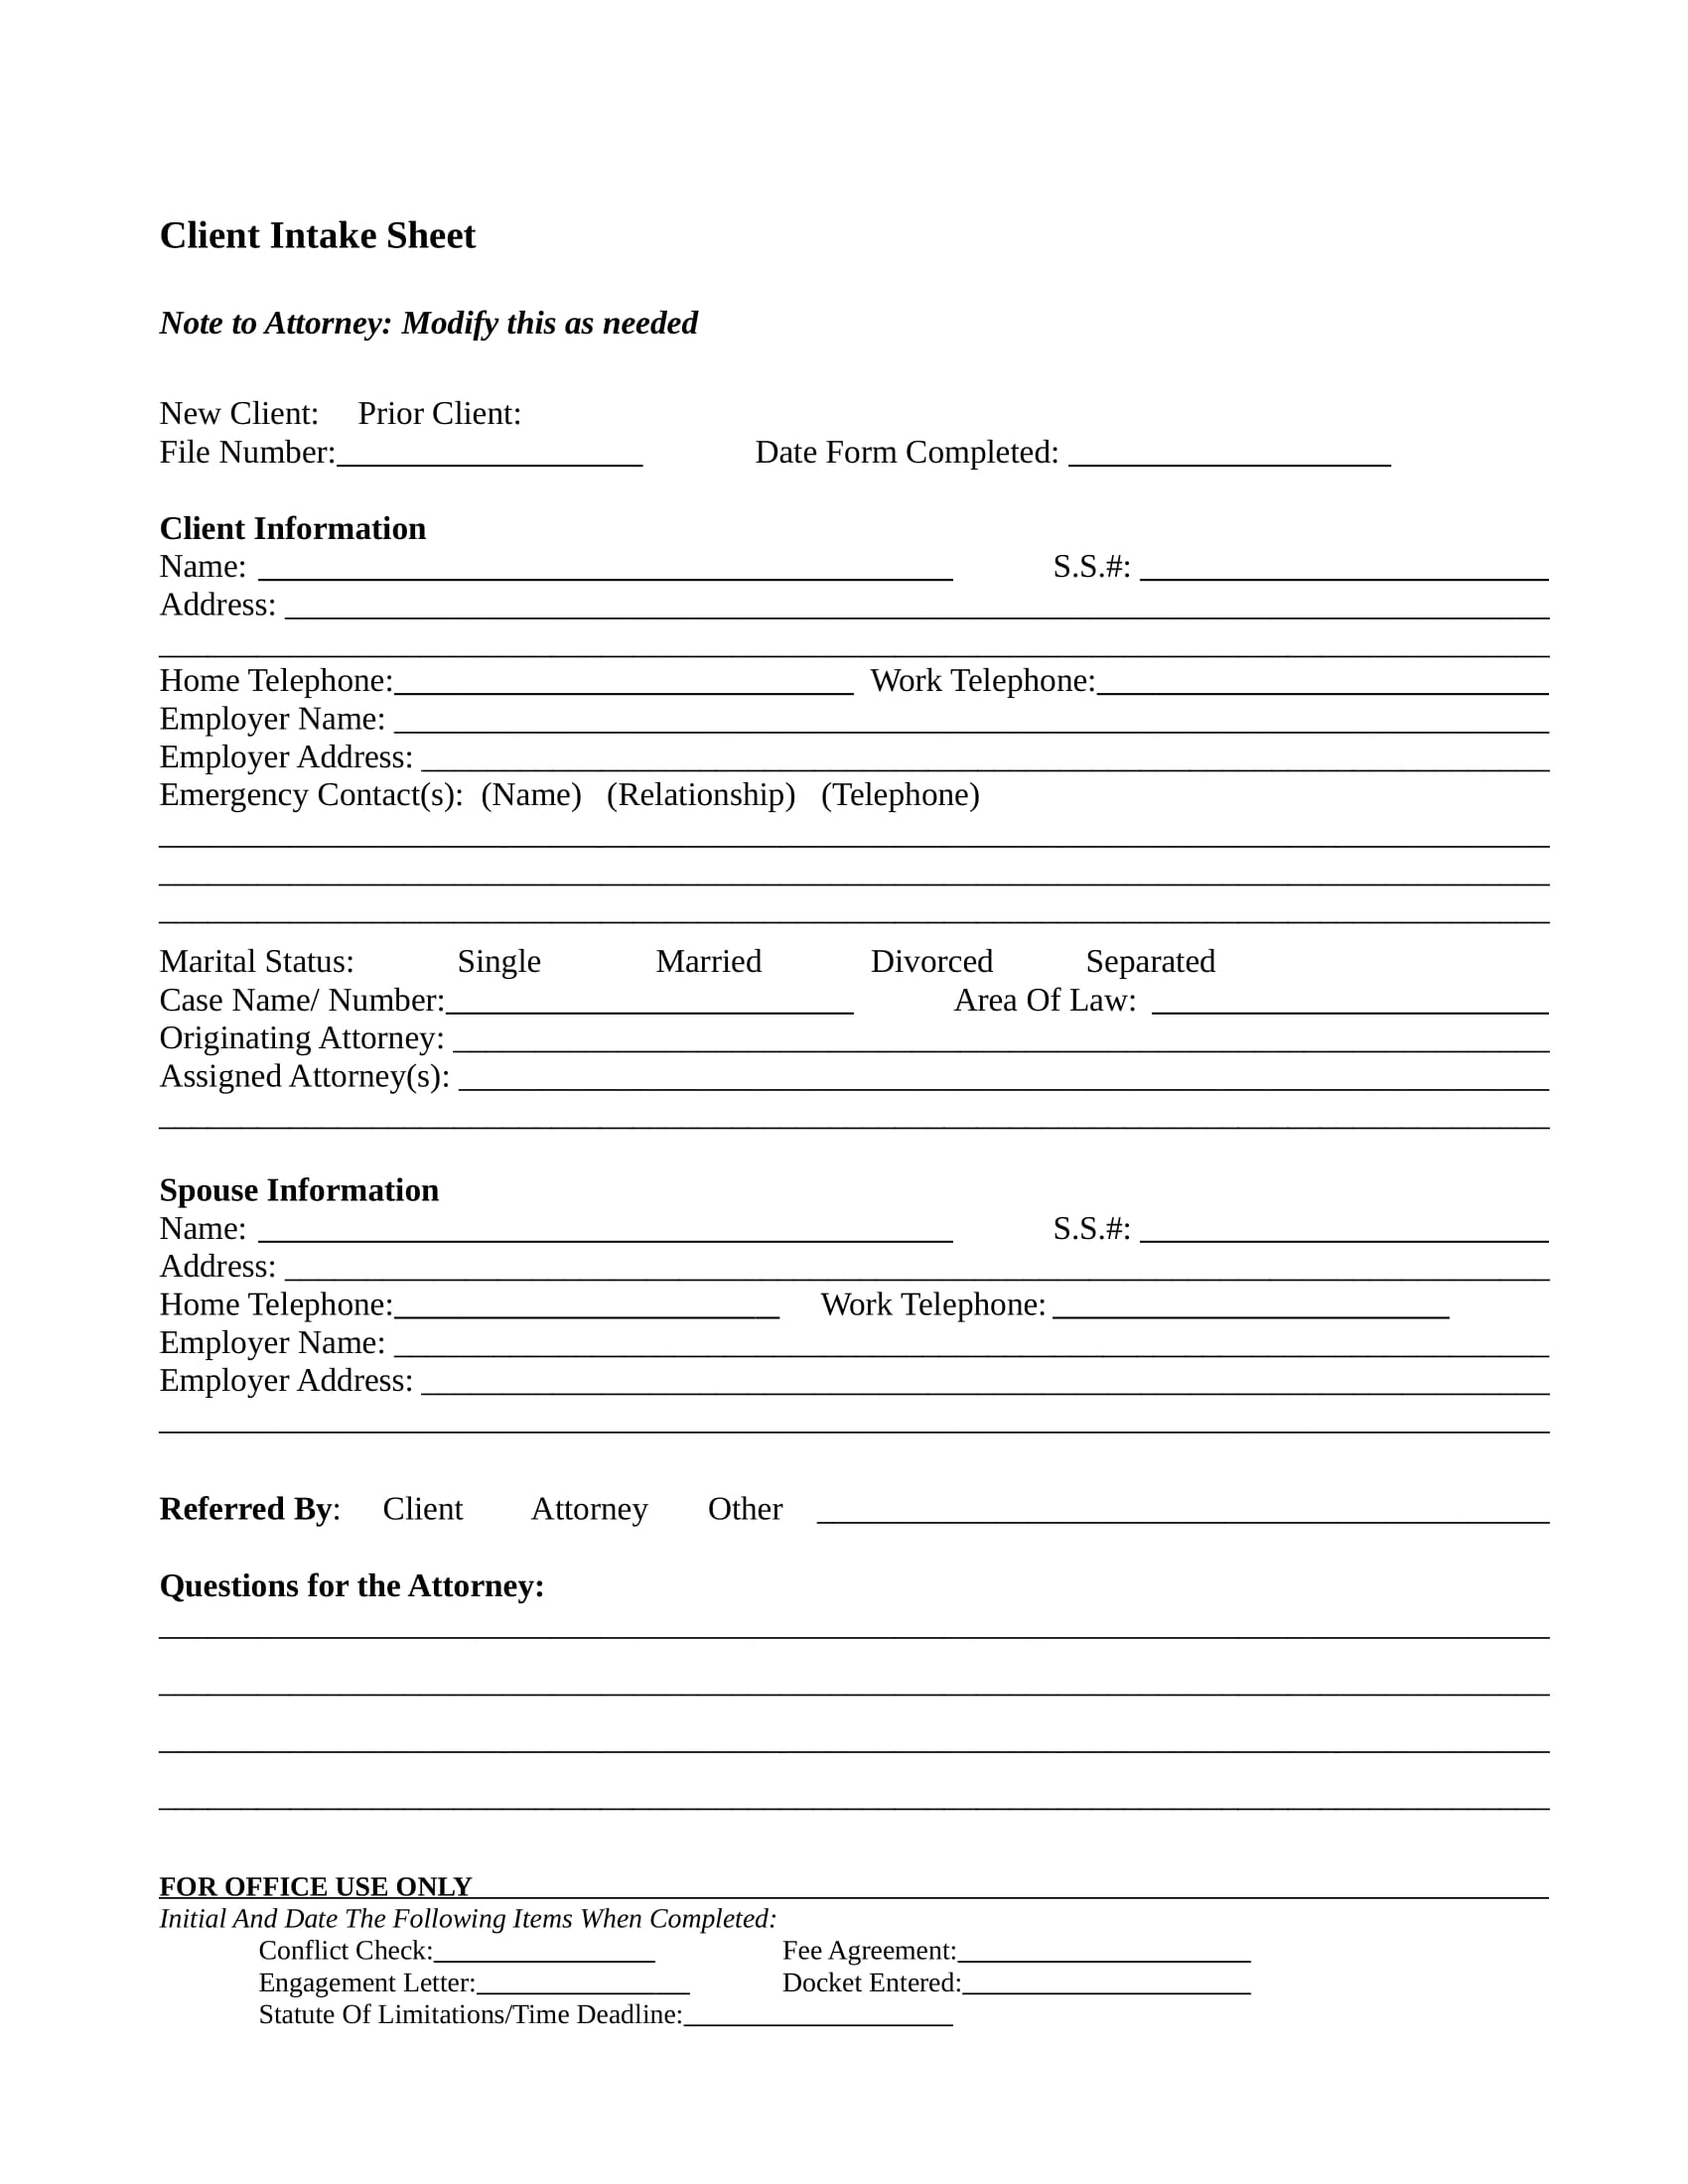 client intake form in doc 1